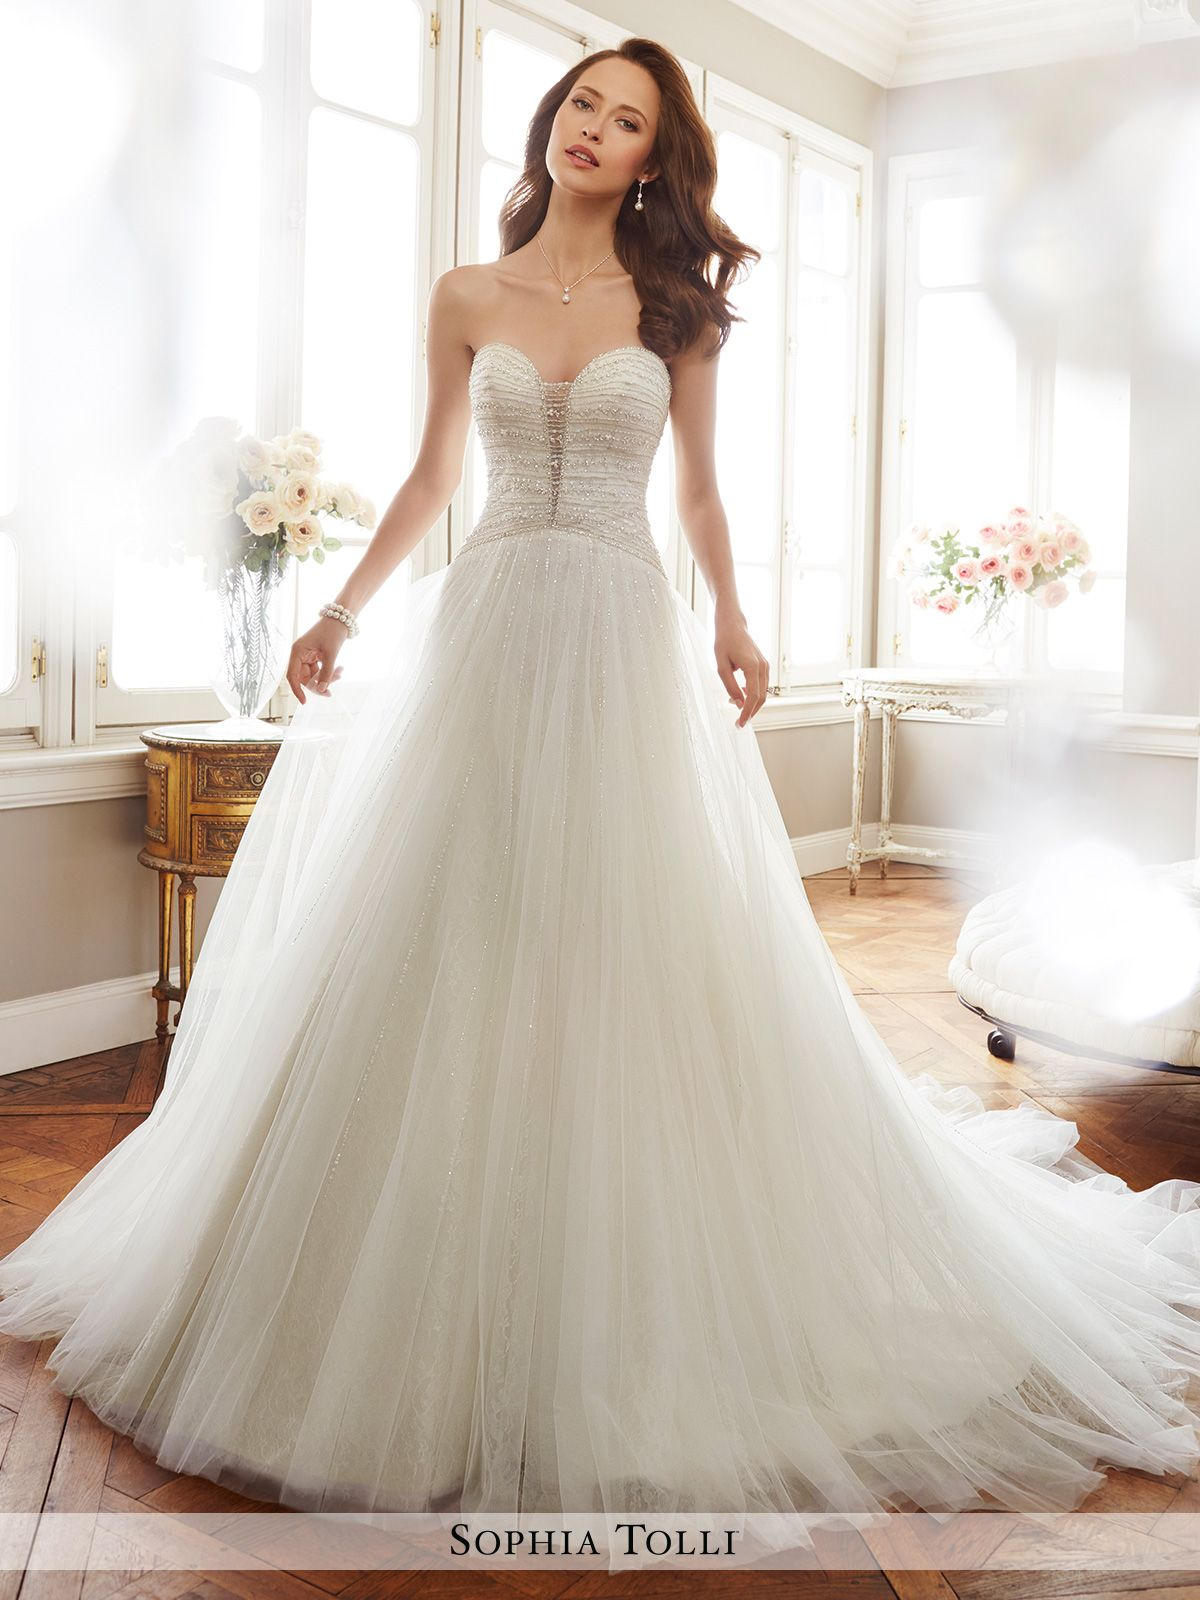 6b30ab7f75 Strapless misty tulle A-line gown with soft allover lace set underneath  tulle layers features a semi-sheer plunging sweetheart neckline